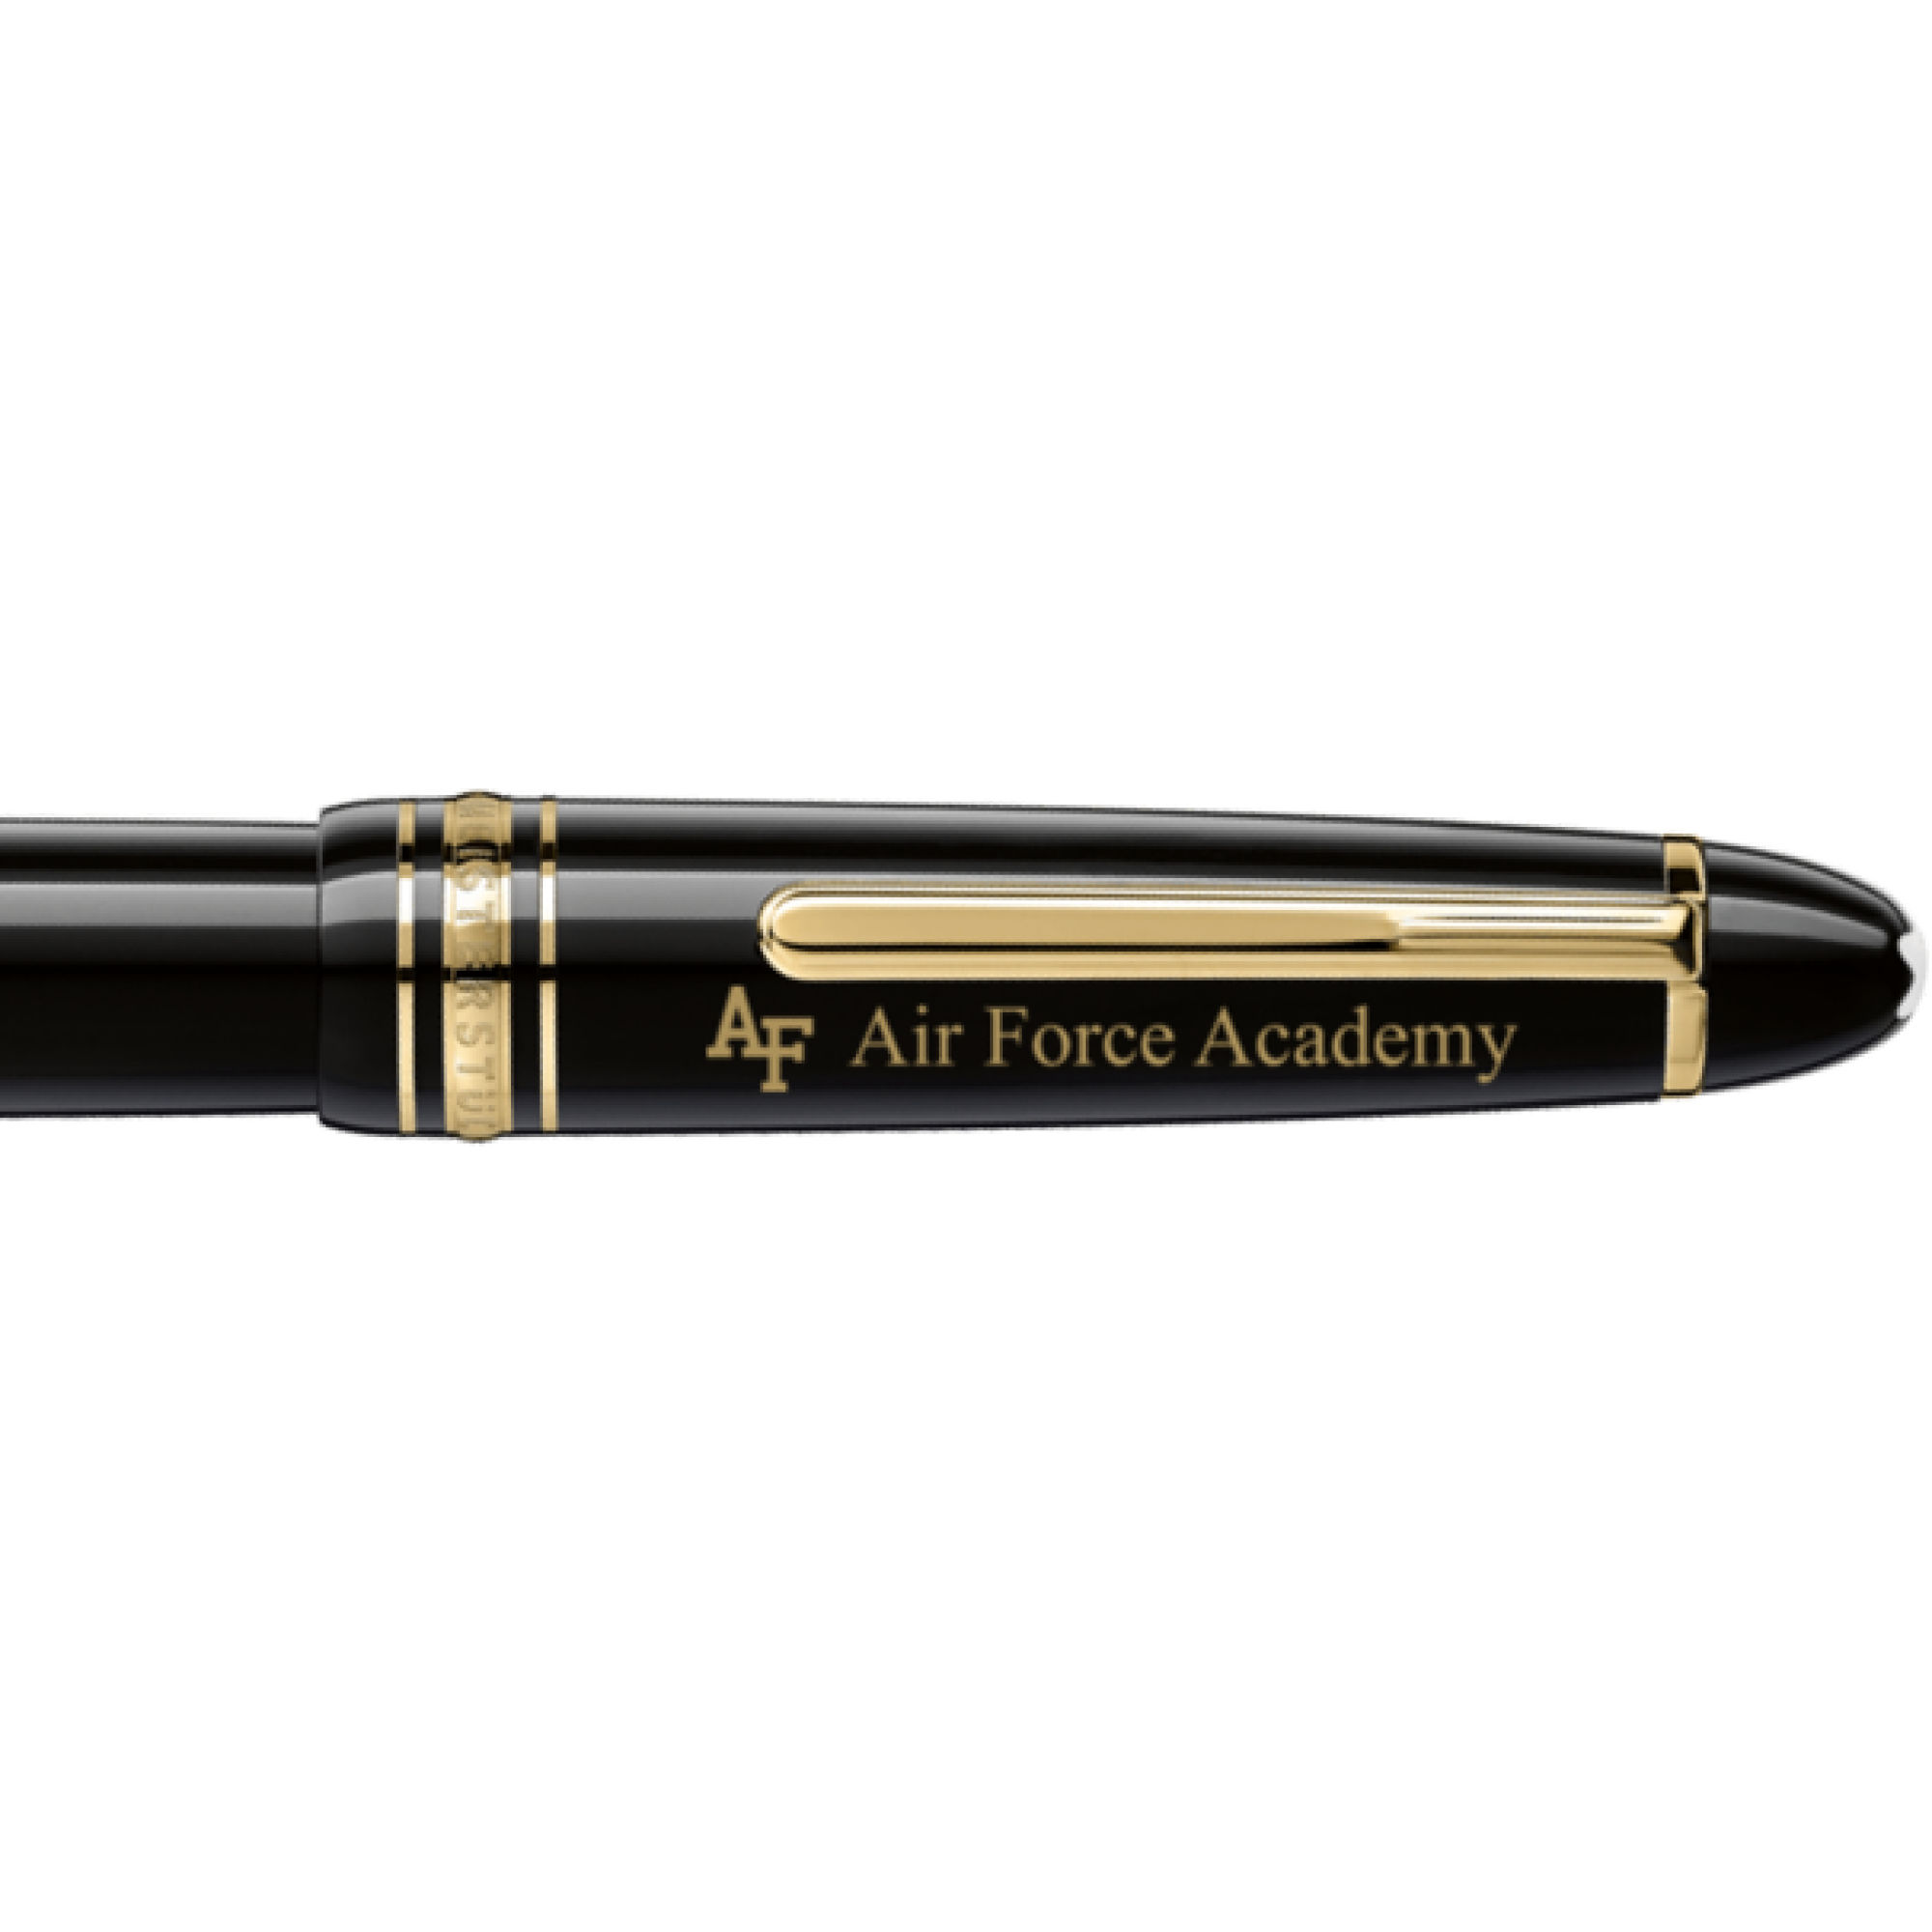 US Air Force Academy Montblanc Meisterstück LeGrand Rollerball Pen in Gold